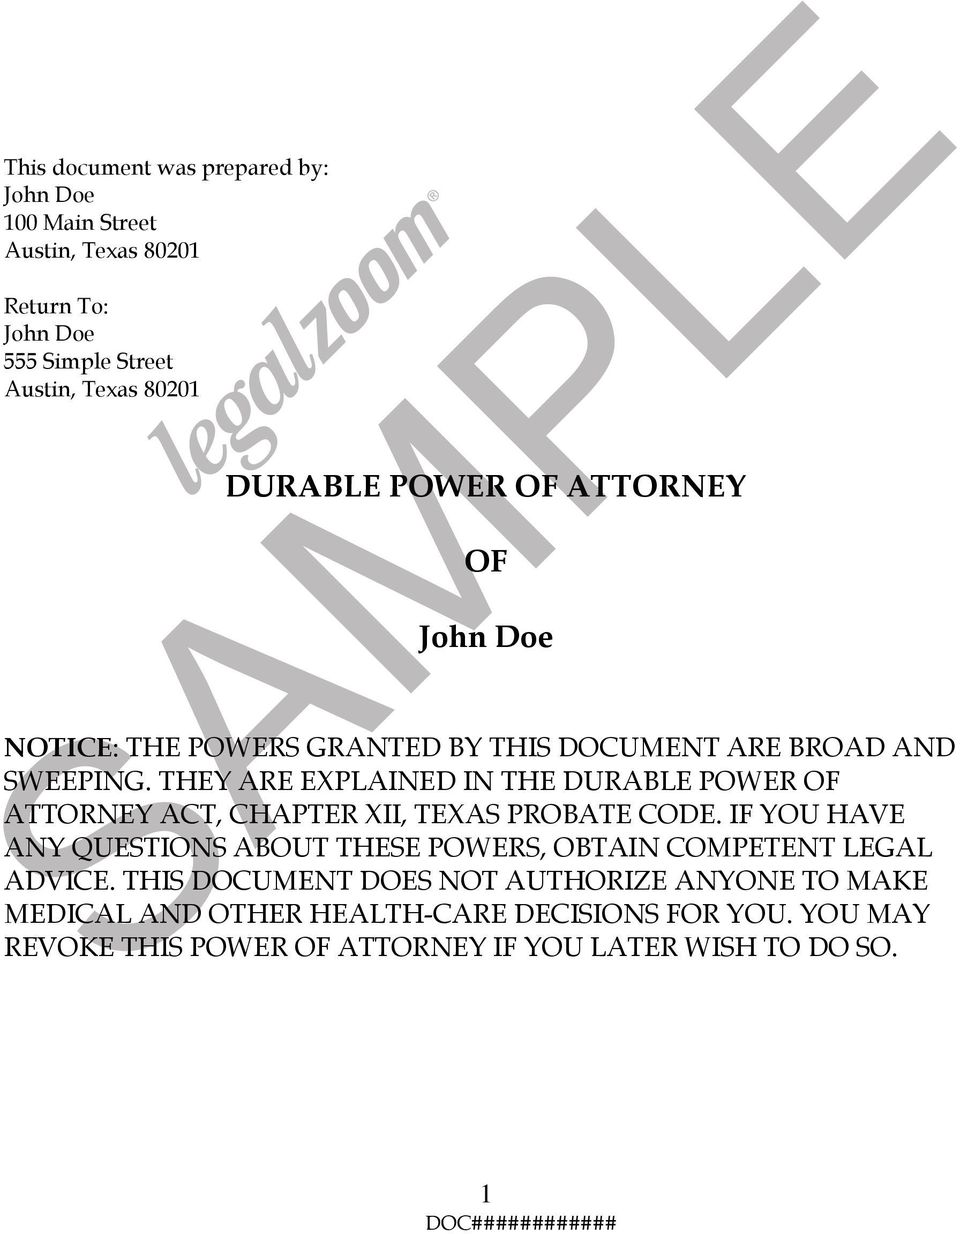 THEY ARE EXPLAINED IN THE DURABLE POWER OF ATTORNEY ACT, CHAPTER XII, TEXAS PROBATE CODE.